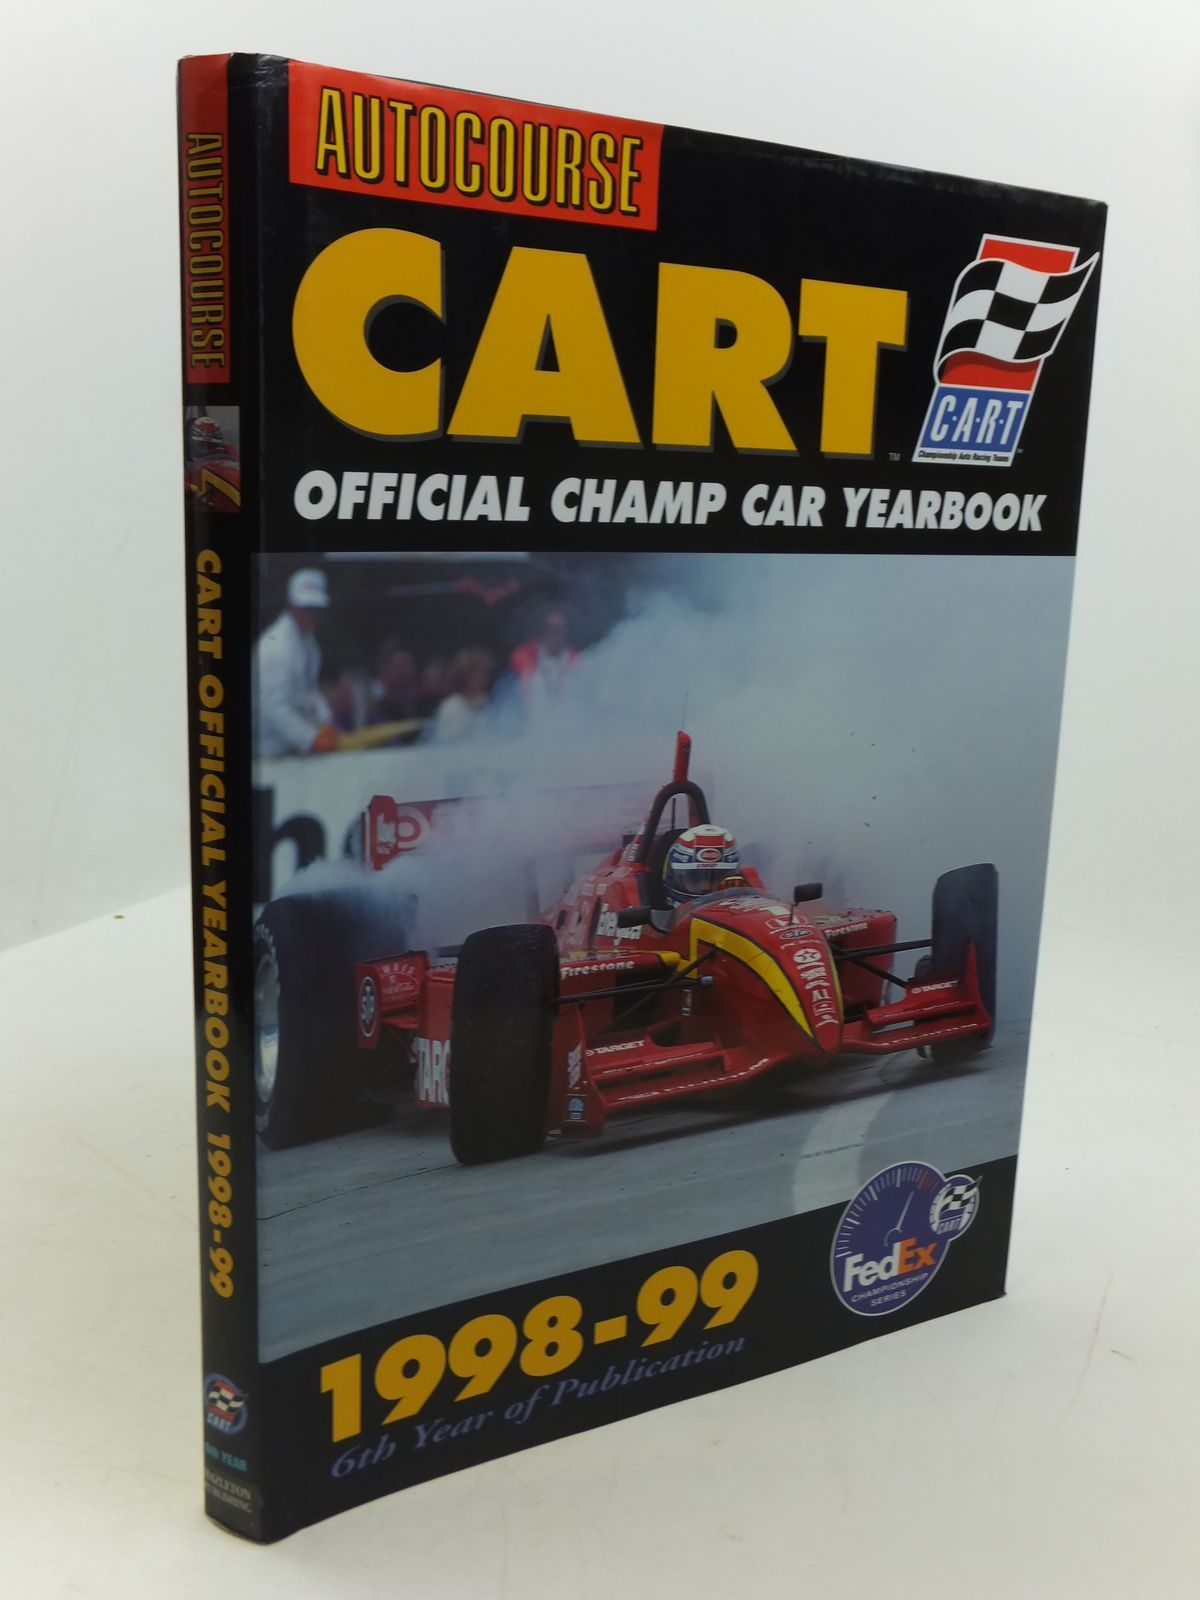 Photo of AUTOCOURSE CART OFFICIAL YEARBOOK 1998-99 published by Hazleton Publishing (STOCK CODE: 1807399)  for sale by Stella & Rose's Books